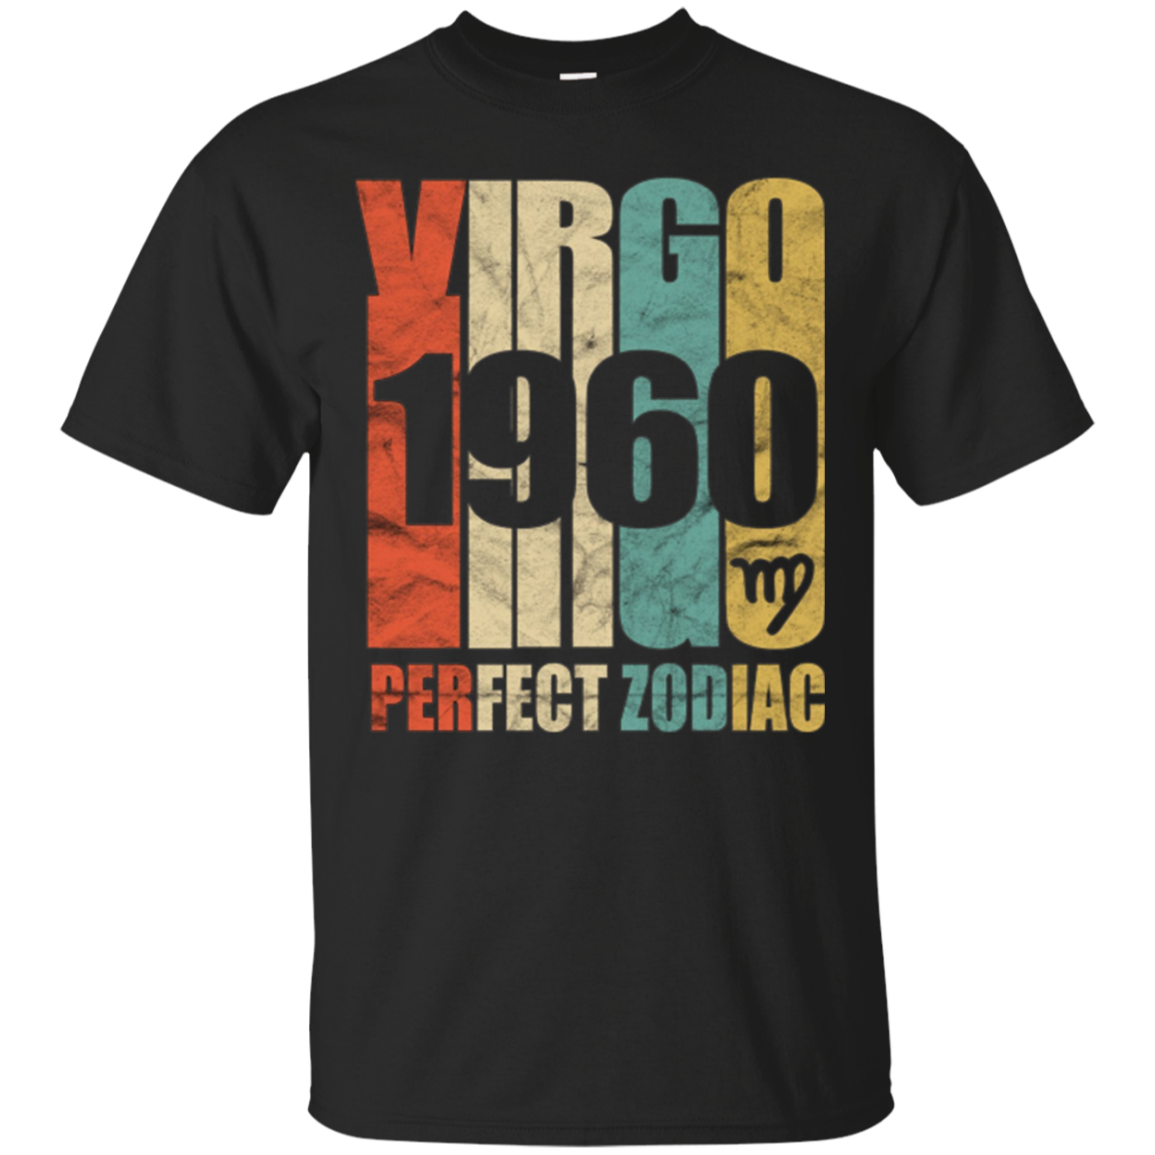 Vintage Virgo 1960 T-Shirt 57 yrs old Bday 57th Birthday Tee